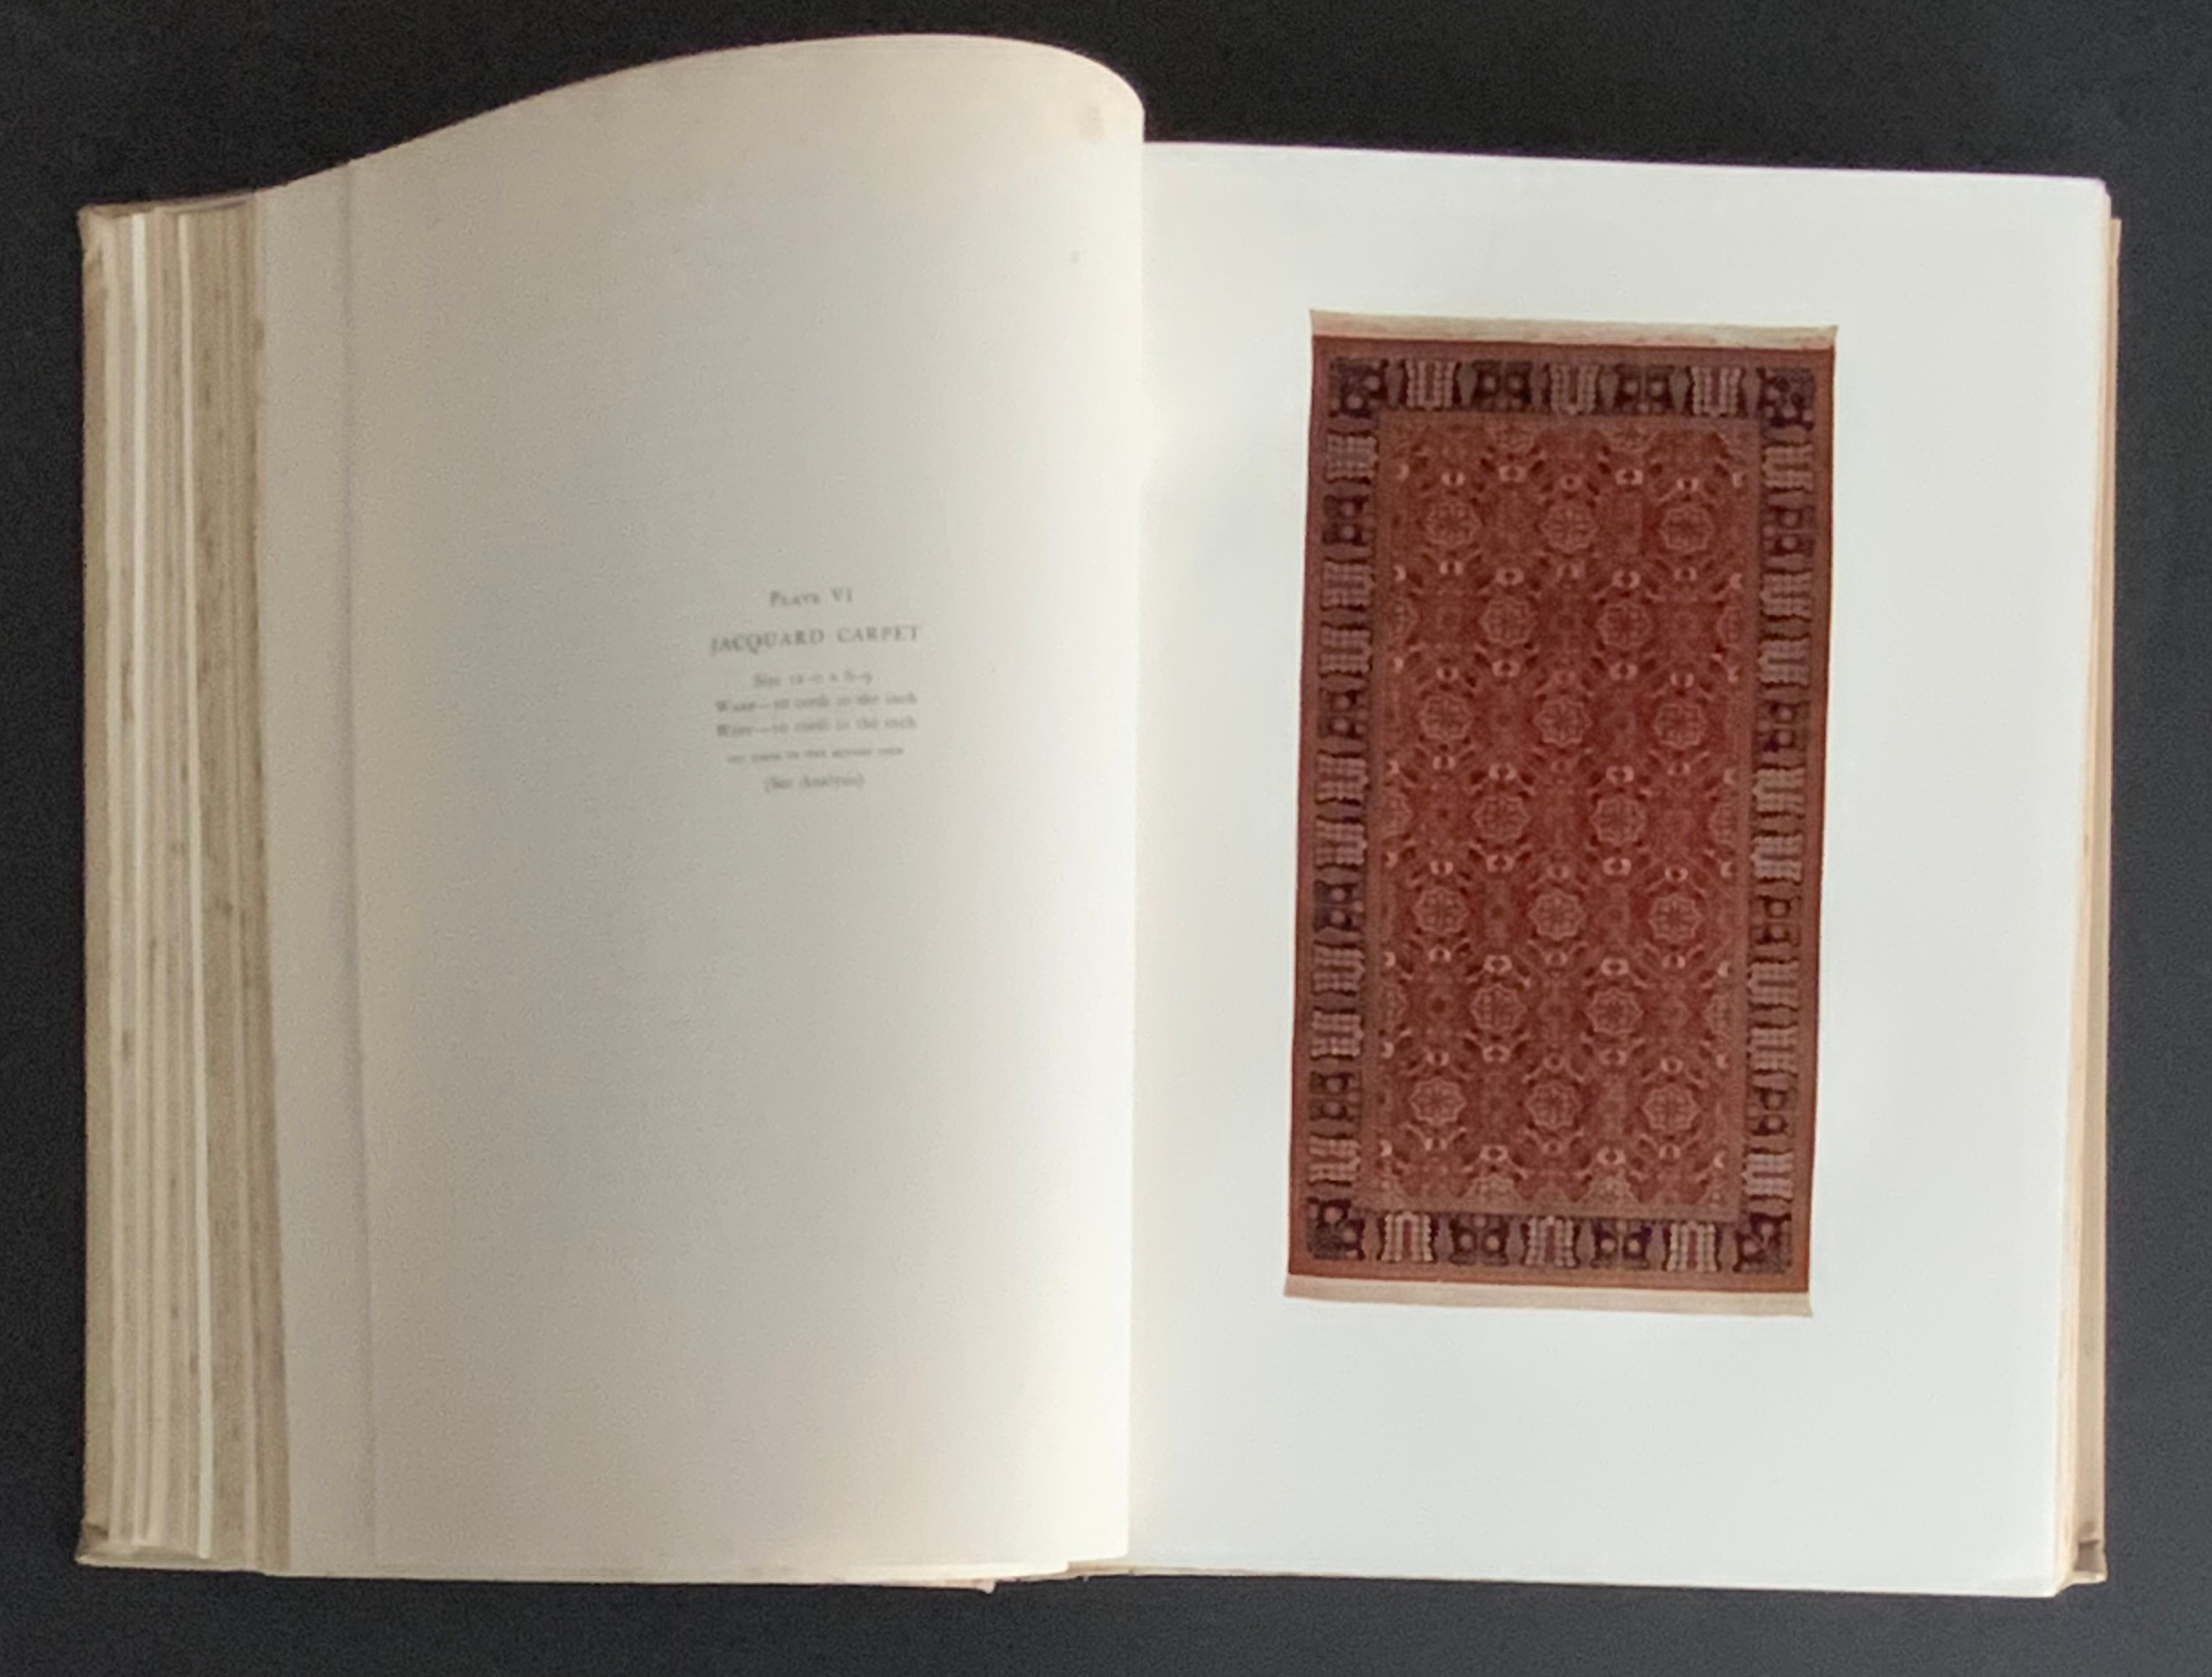 ORIENTAL CARPETS RUNNERS & RUGS AND SOME JACQUARD REPRODUCTIONS 1910 - Image 7 of 12